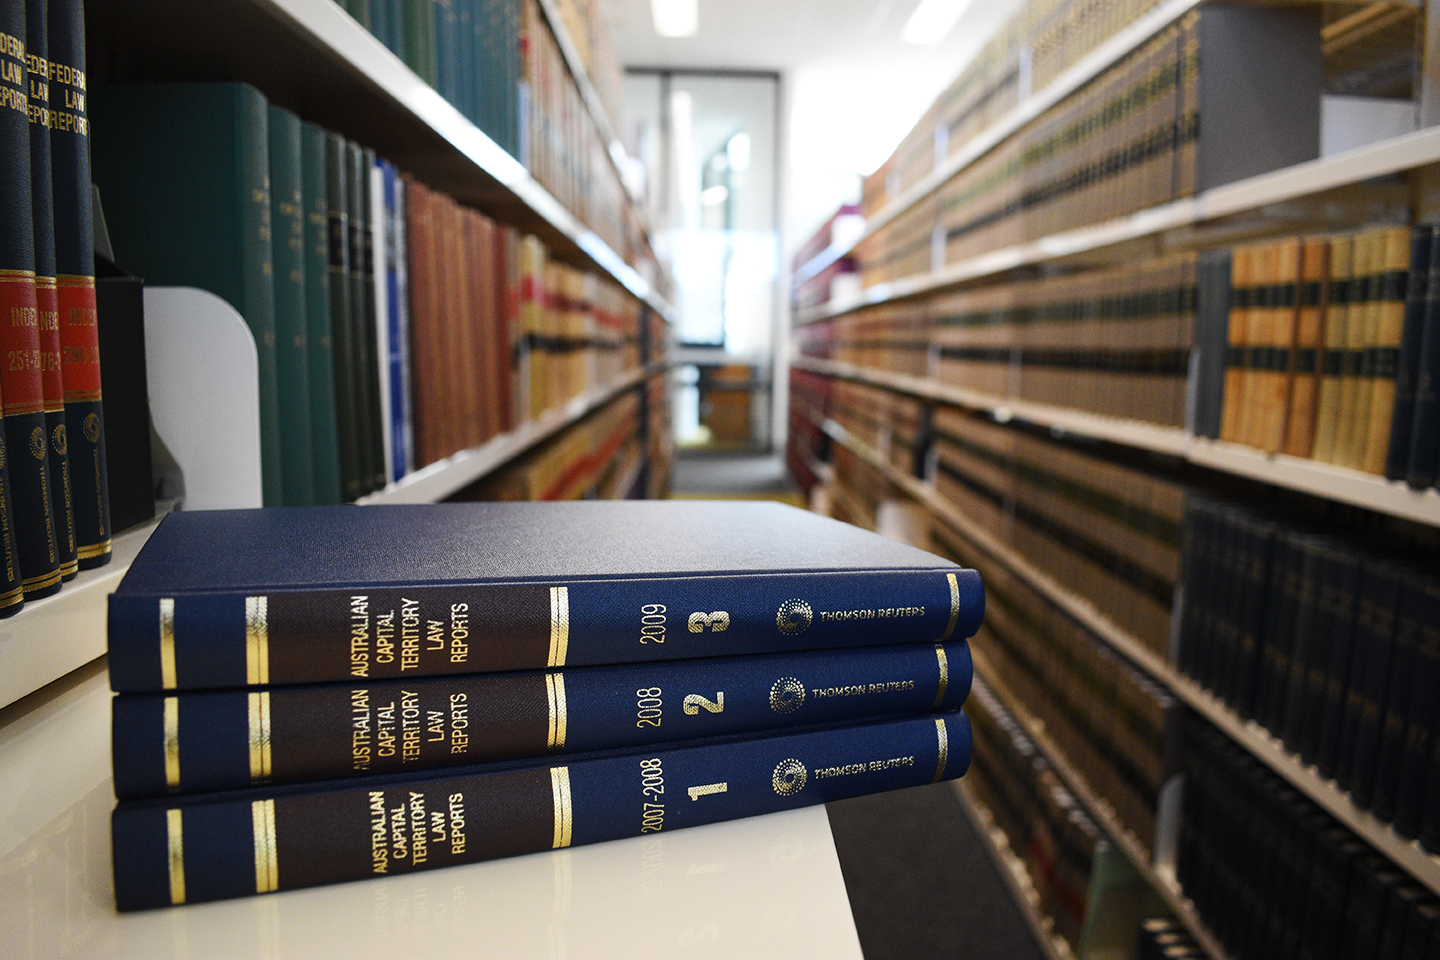 ACT Law Reports and Library Shelves